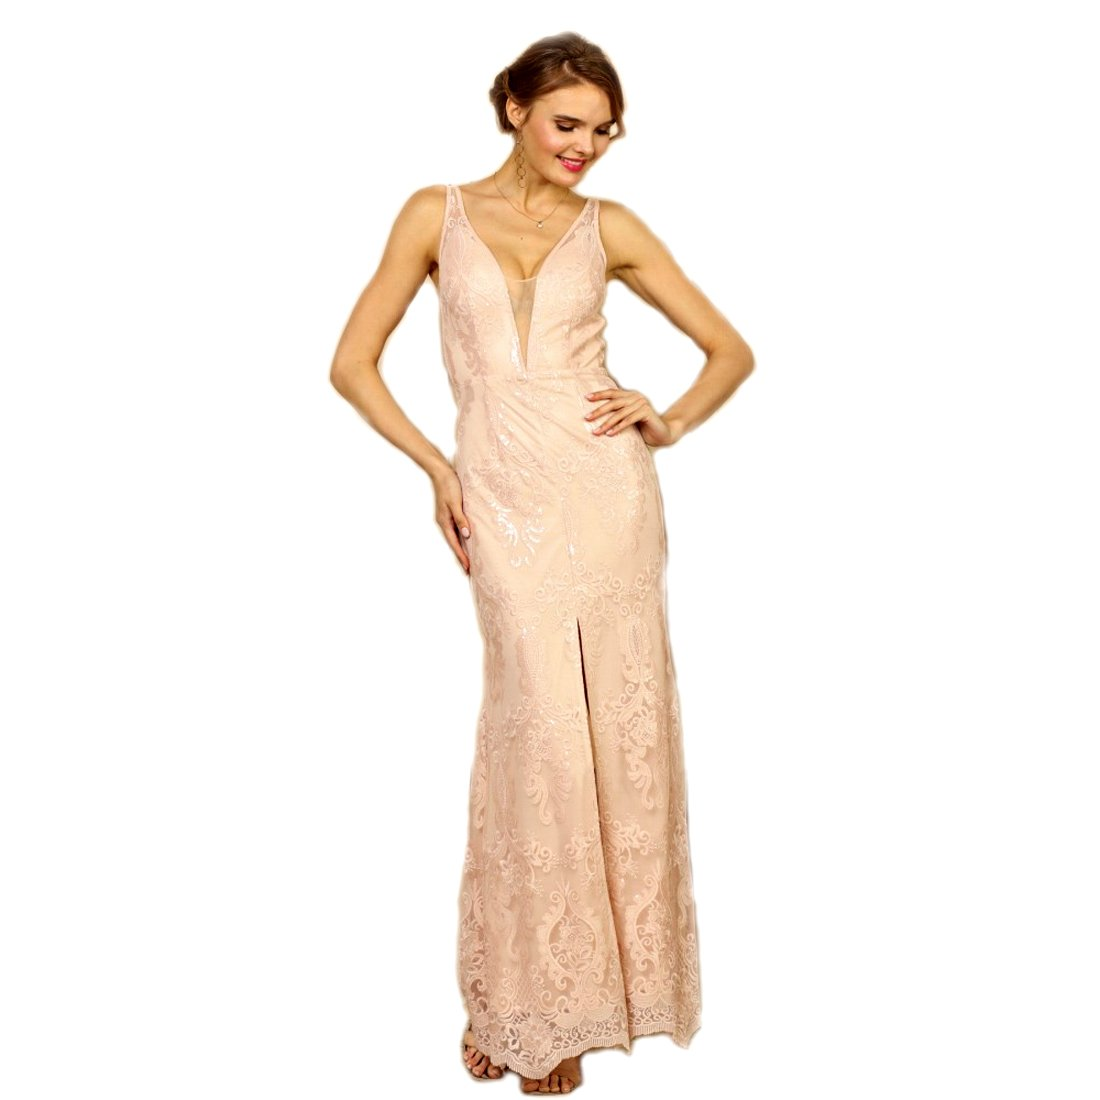 Crazy4Bling Soieblue Pale Pink and Nude Lace Yoke & Mesh Sleeveless Embroidery Detail Maxi Dress, Medium